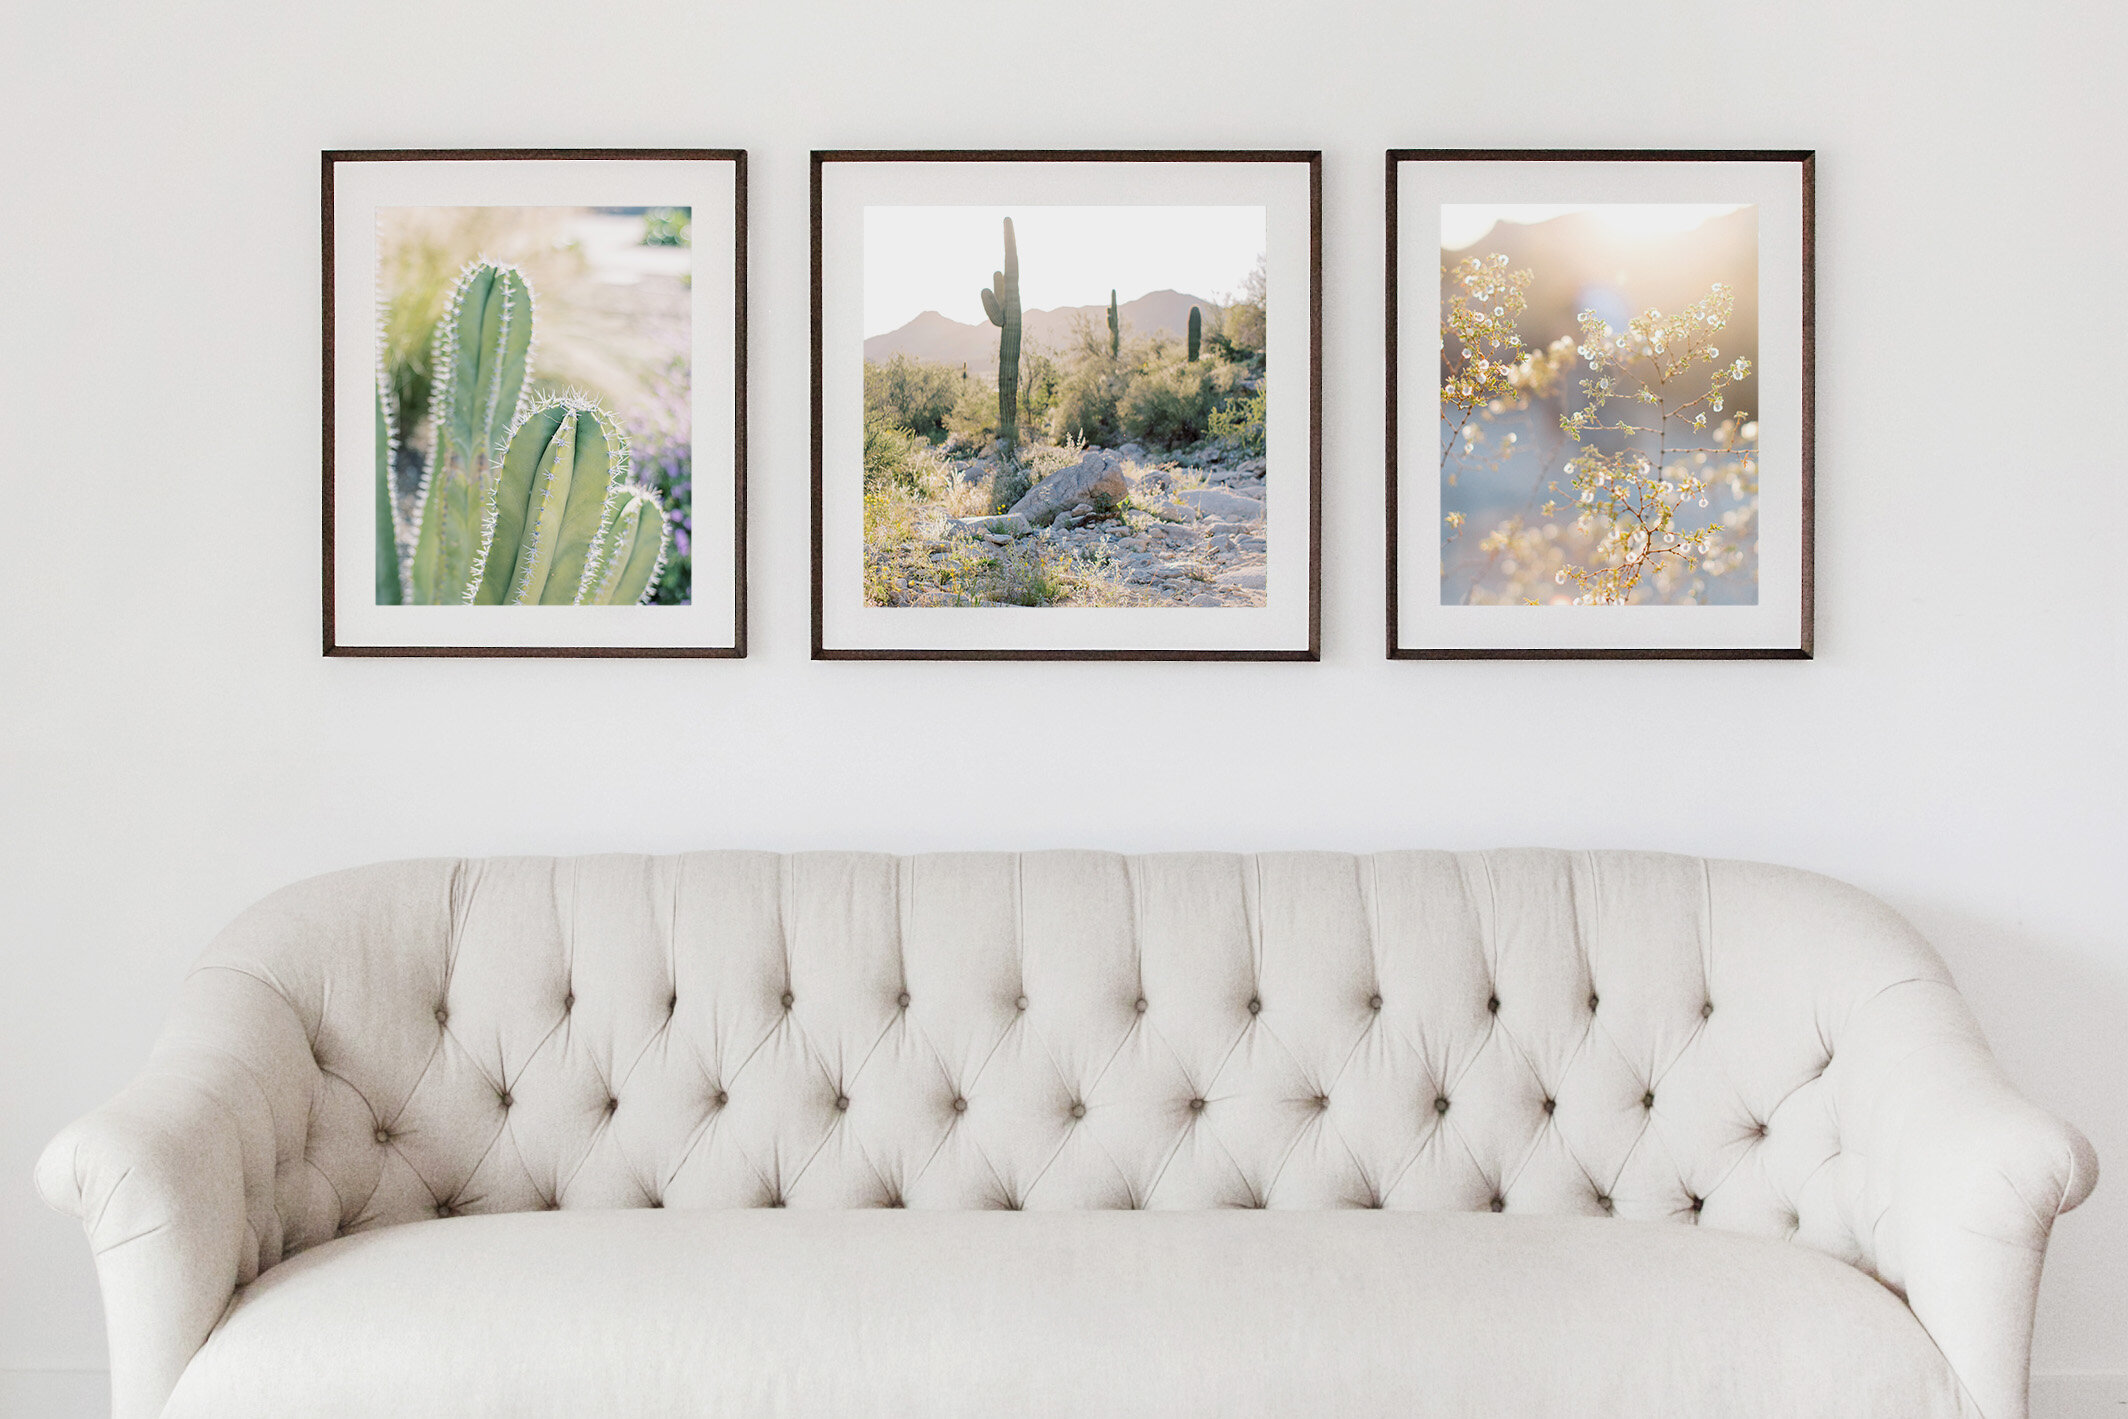 $99 - Assorted Prints (set of 3)